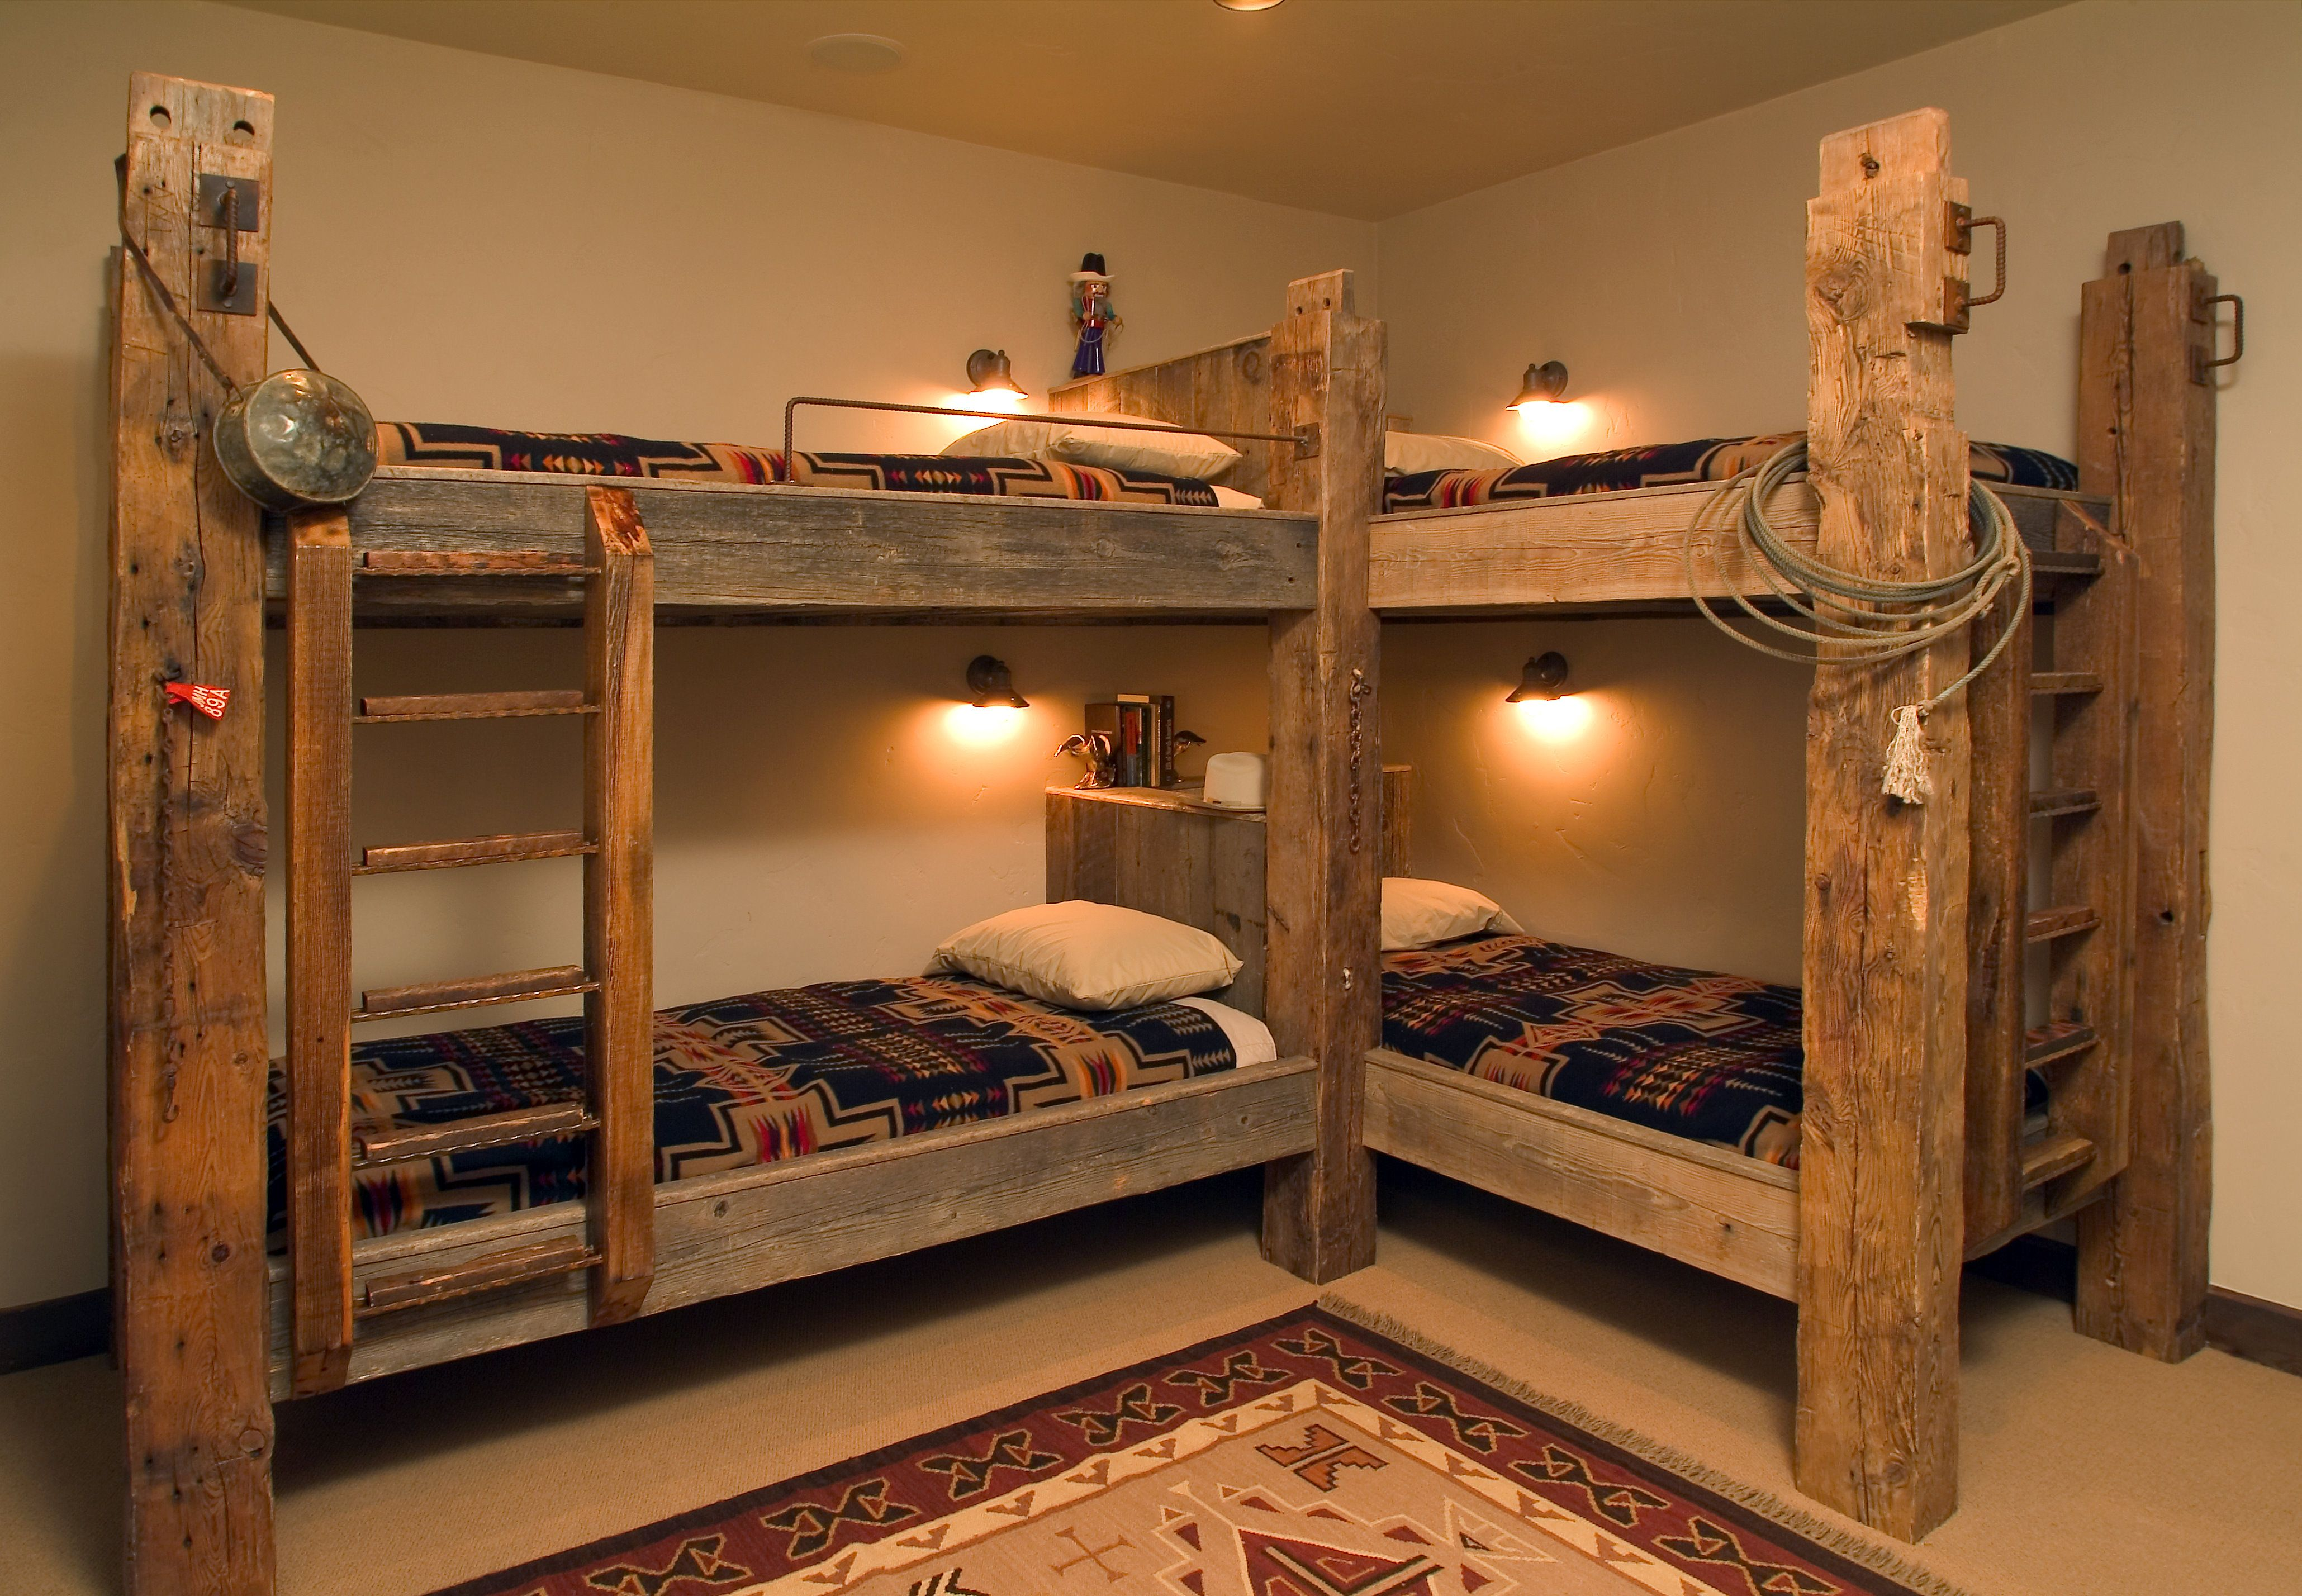 Traditional Style Bunk Beds Featuring Timbers And Western Accents